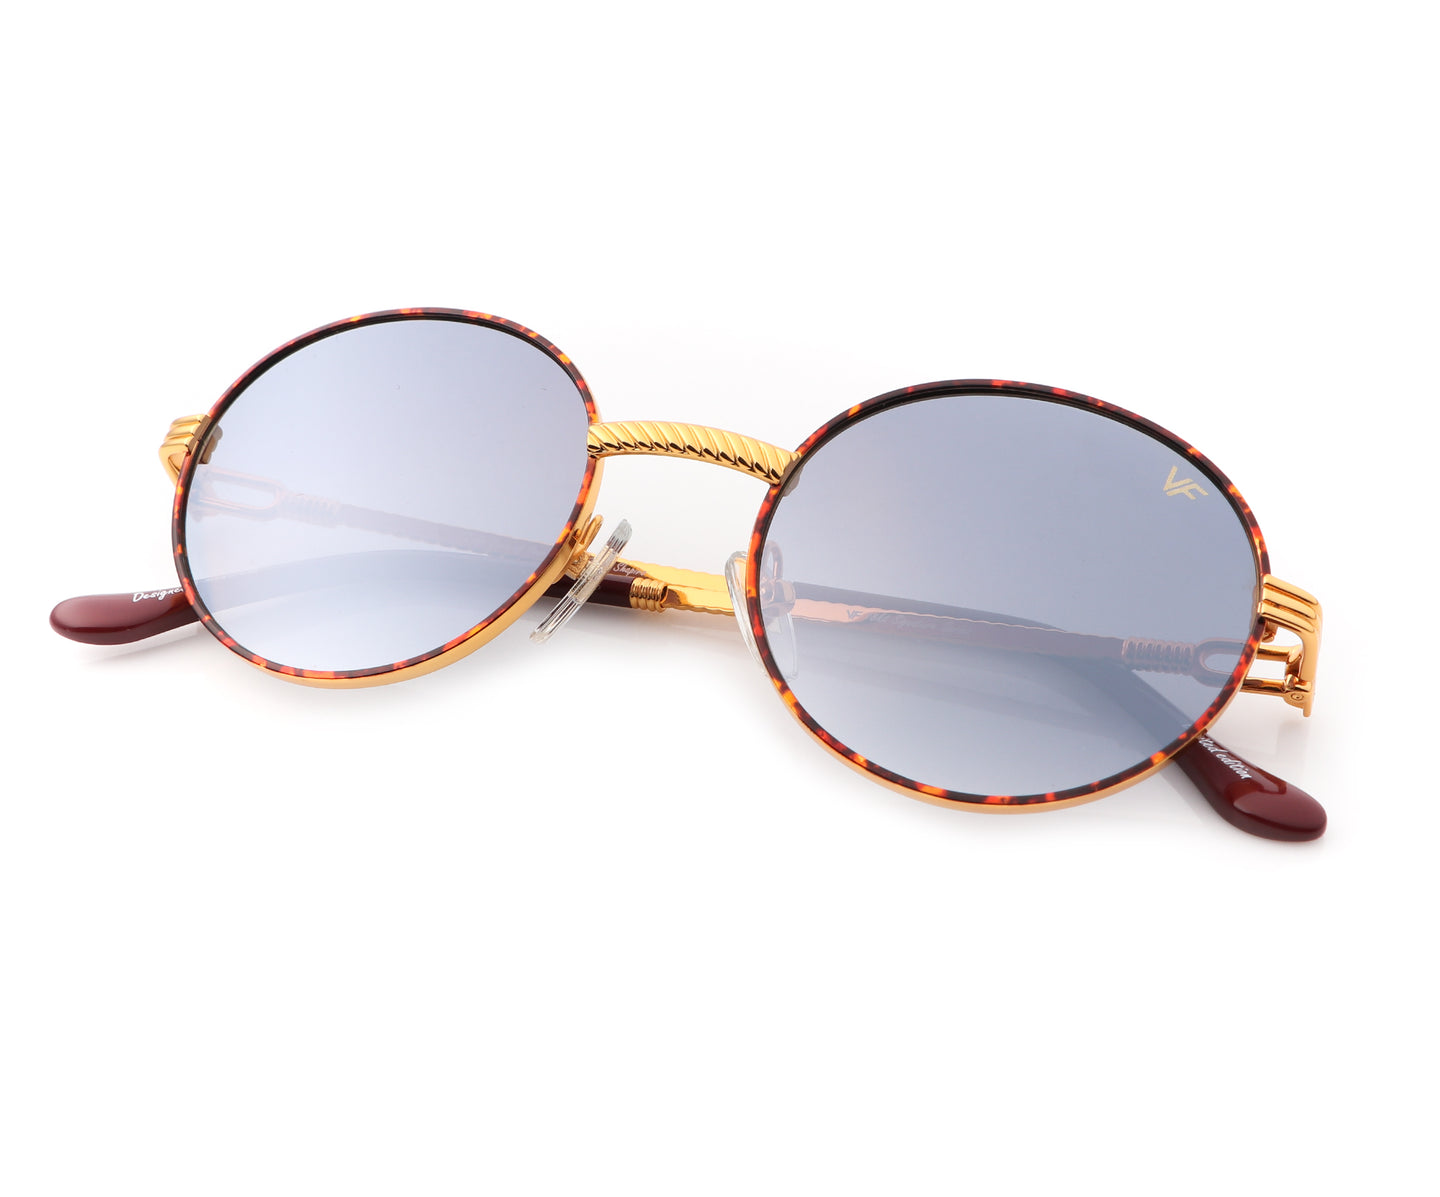 VF 508 Tortoise 18KT Gold (Gray / Blue Gradient), VF by Vintage Frames , glasses frames, eyeglasses online, eyeglass frames, mens glasses, womens glasses, buy glasses online, designer eyeglasses, vintage sunglasses, retro sunglasses, vintage glasses, sunglass, eyeglass, glasses, lens, vintage frames company, vf